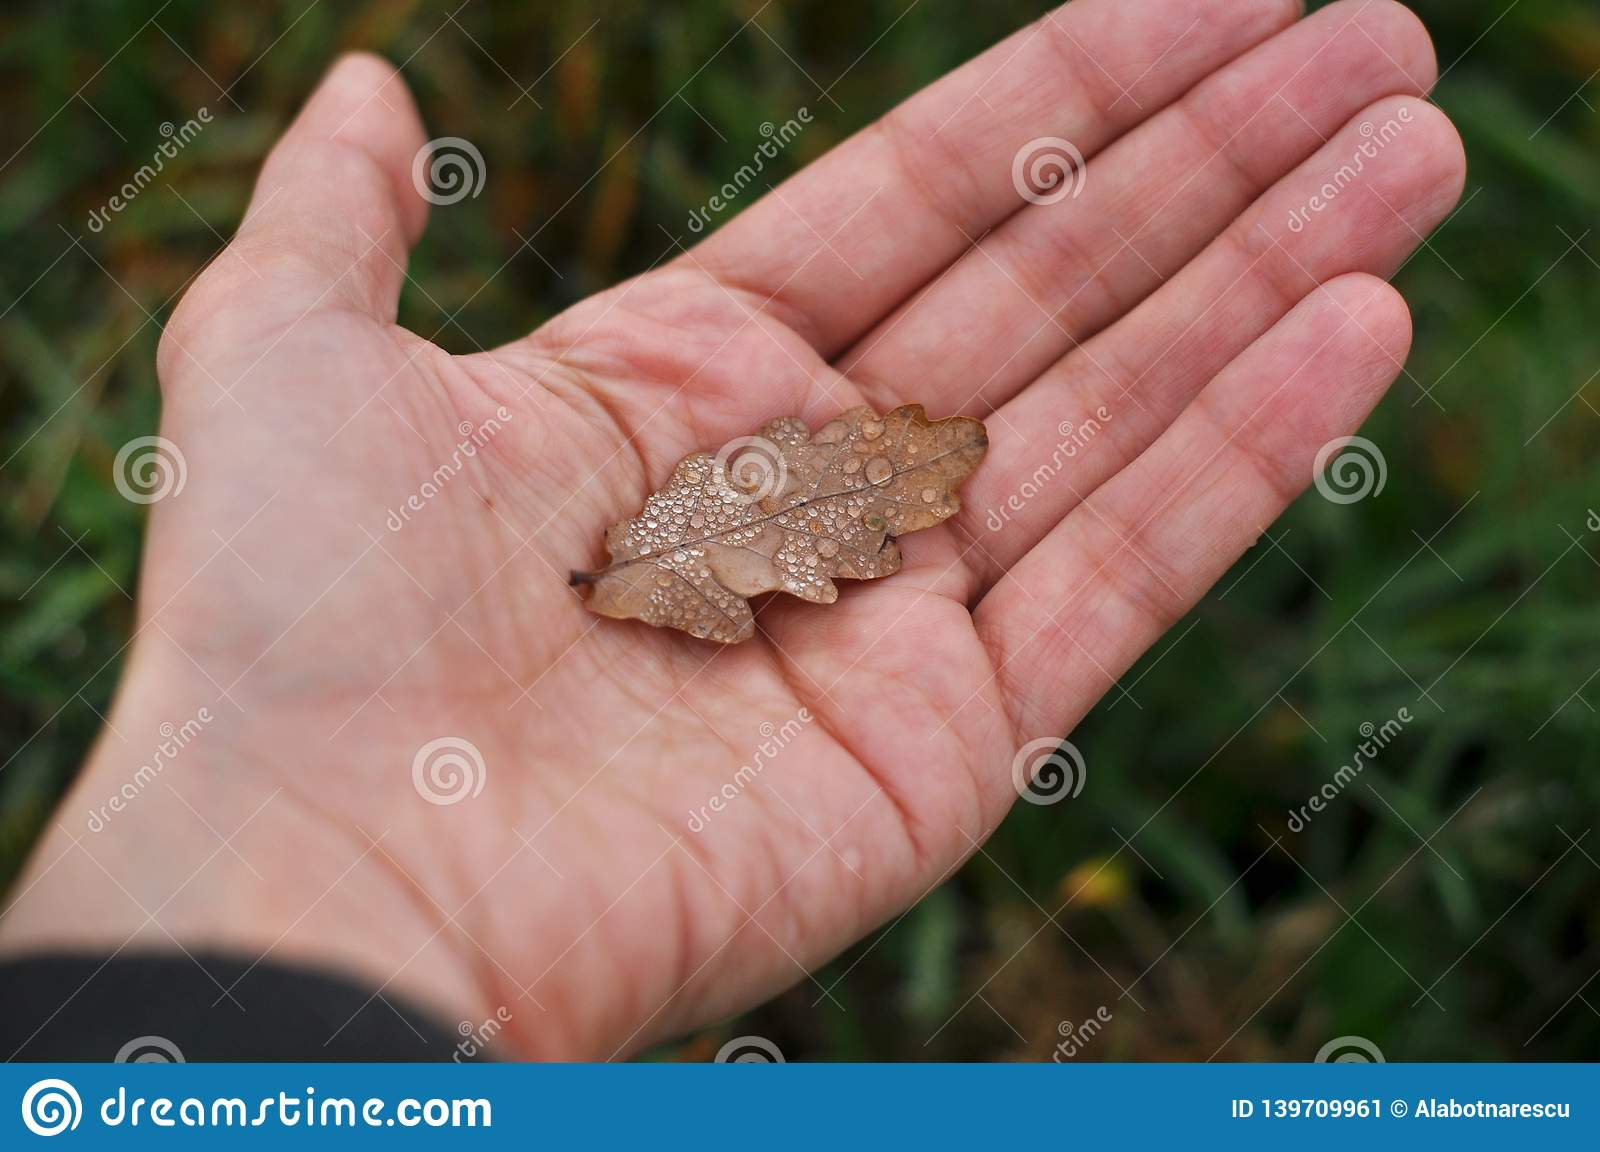 A female hand holds a dried oak leaf. Blurred green grass as the background